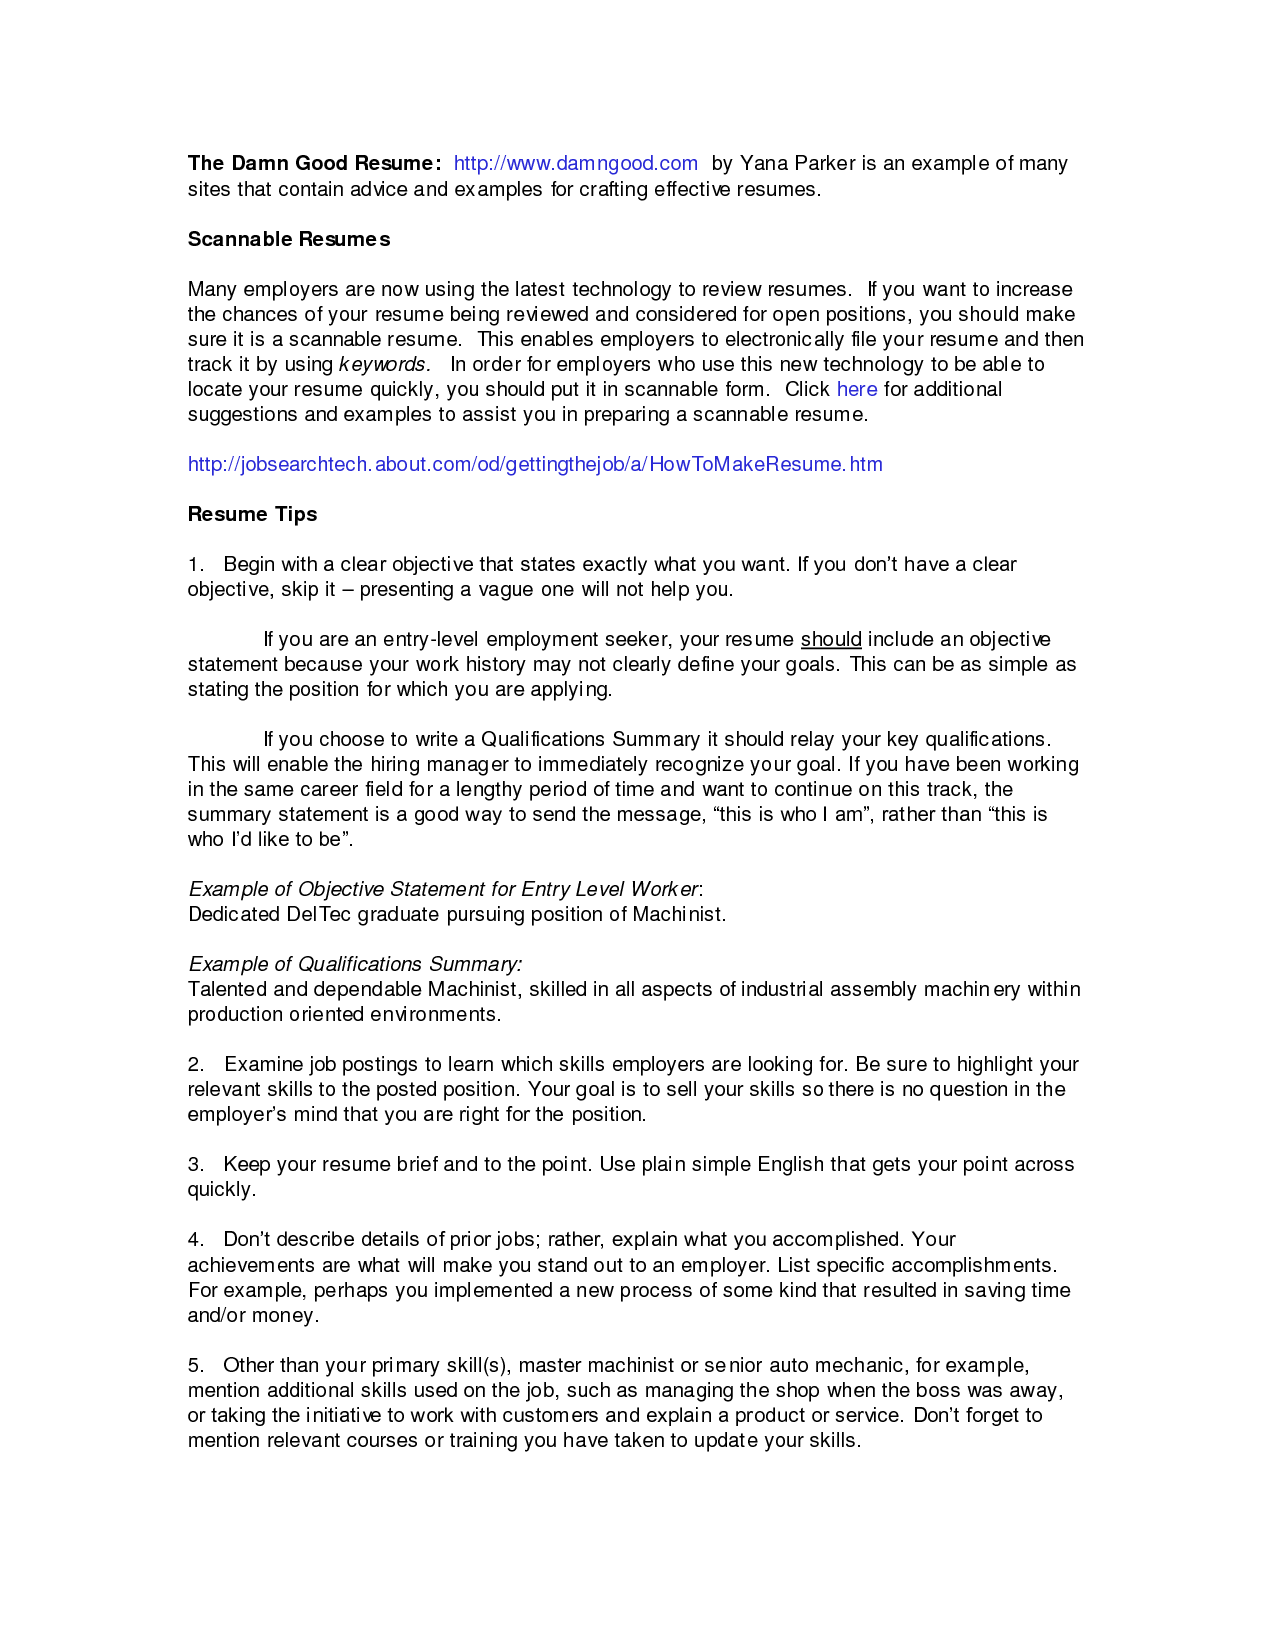 Summary Of Skills Resume Examples. Summary For Resume Examples  Samplebusinessresume Com . Summary Of Skills Resume Examples  Resume Professional Summary Examples